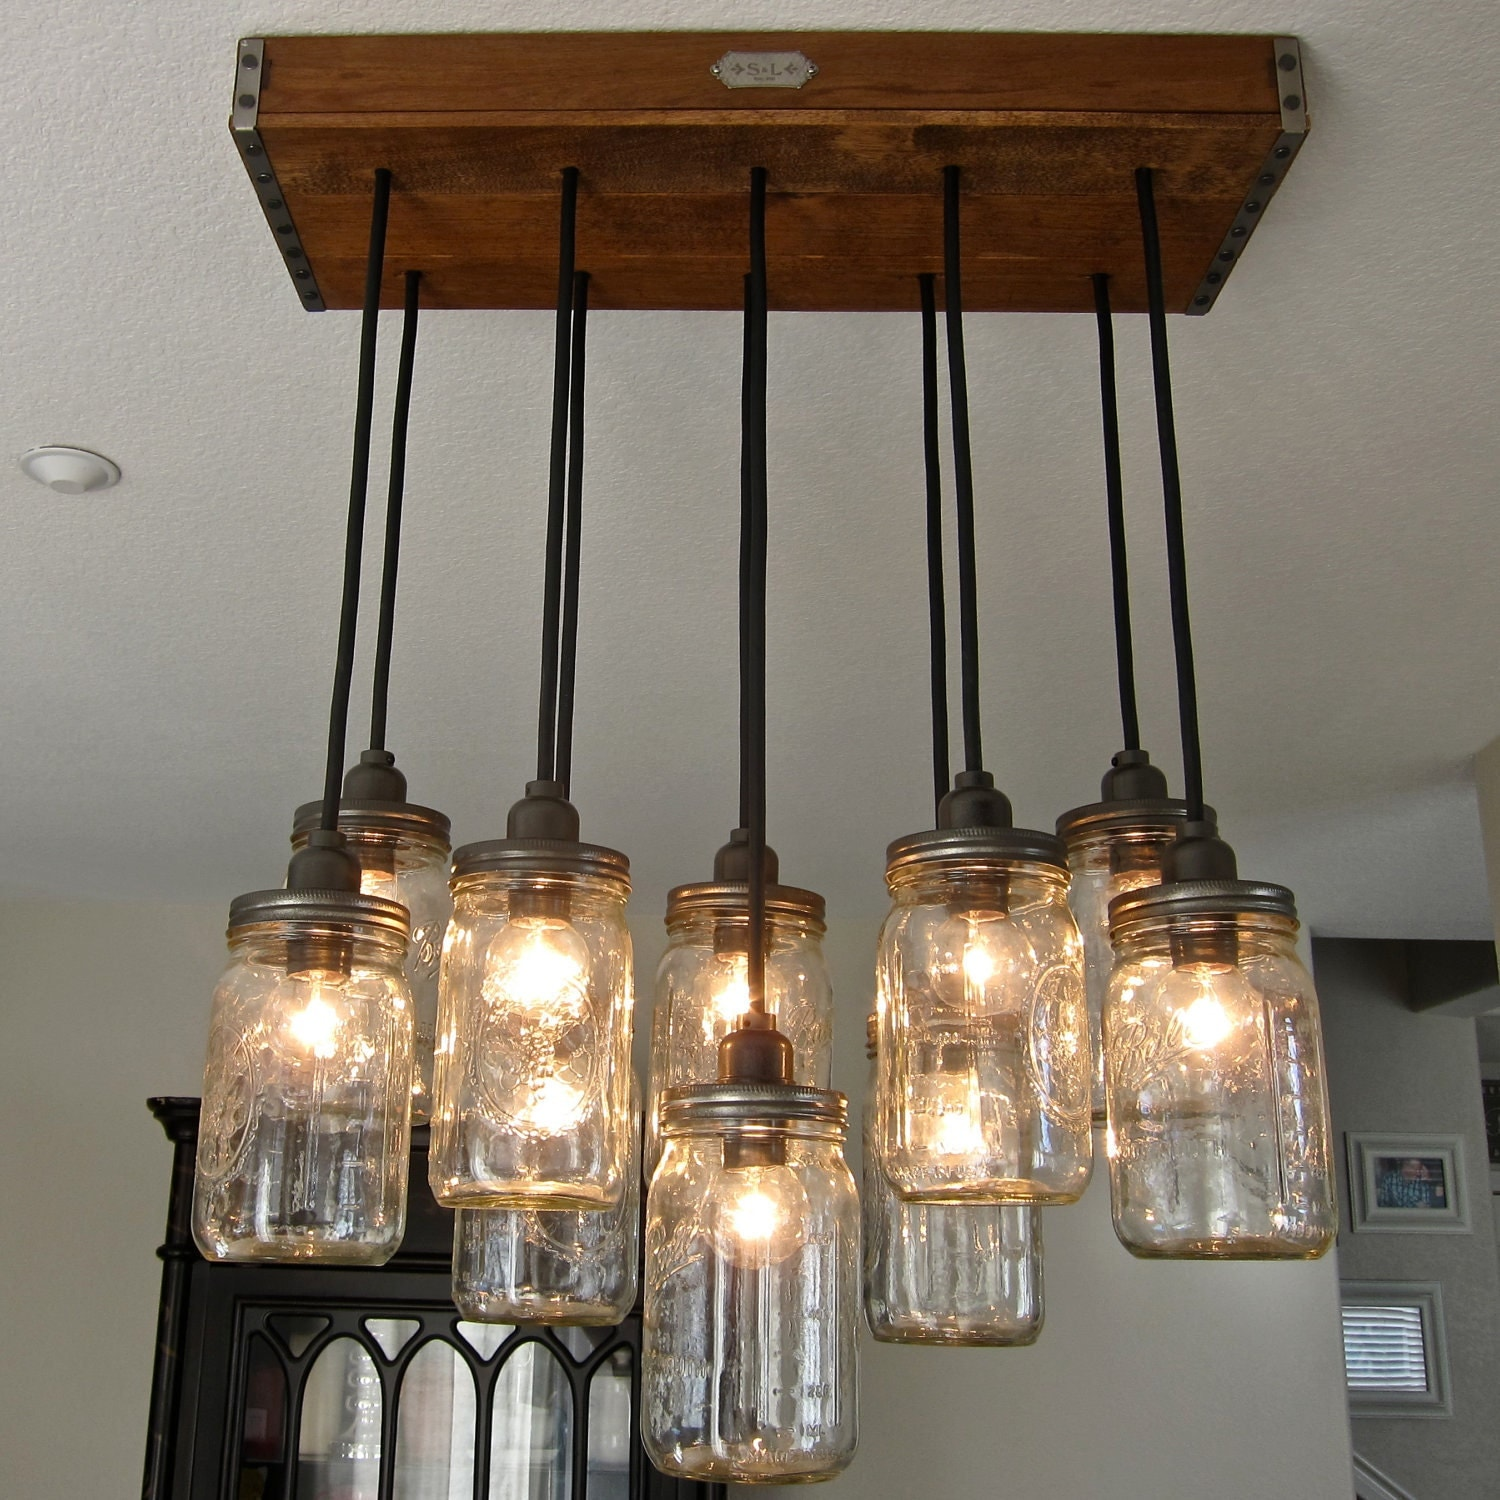 handcrafted 14 mason jar pendant light chandelier w rustic. Black Bedroom Furniture Sets. Home Design Ideas